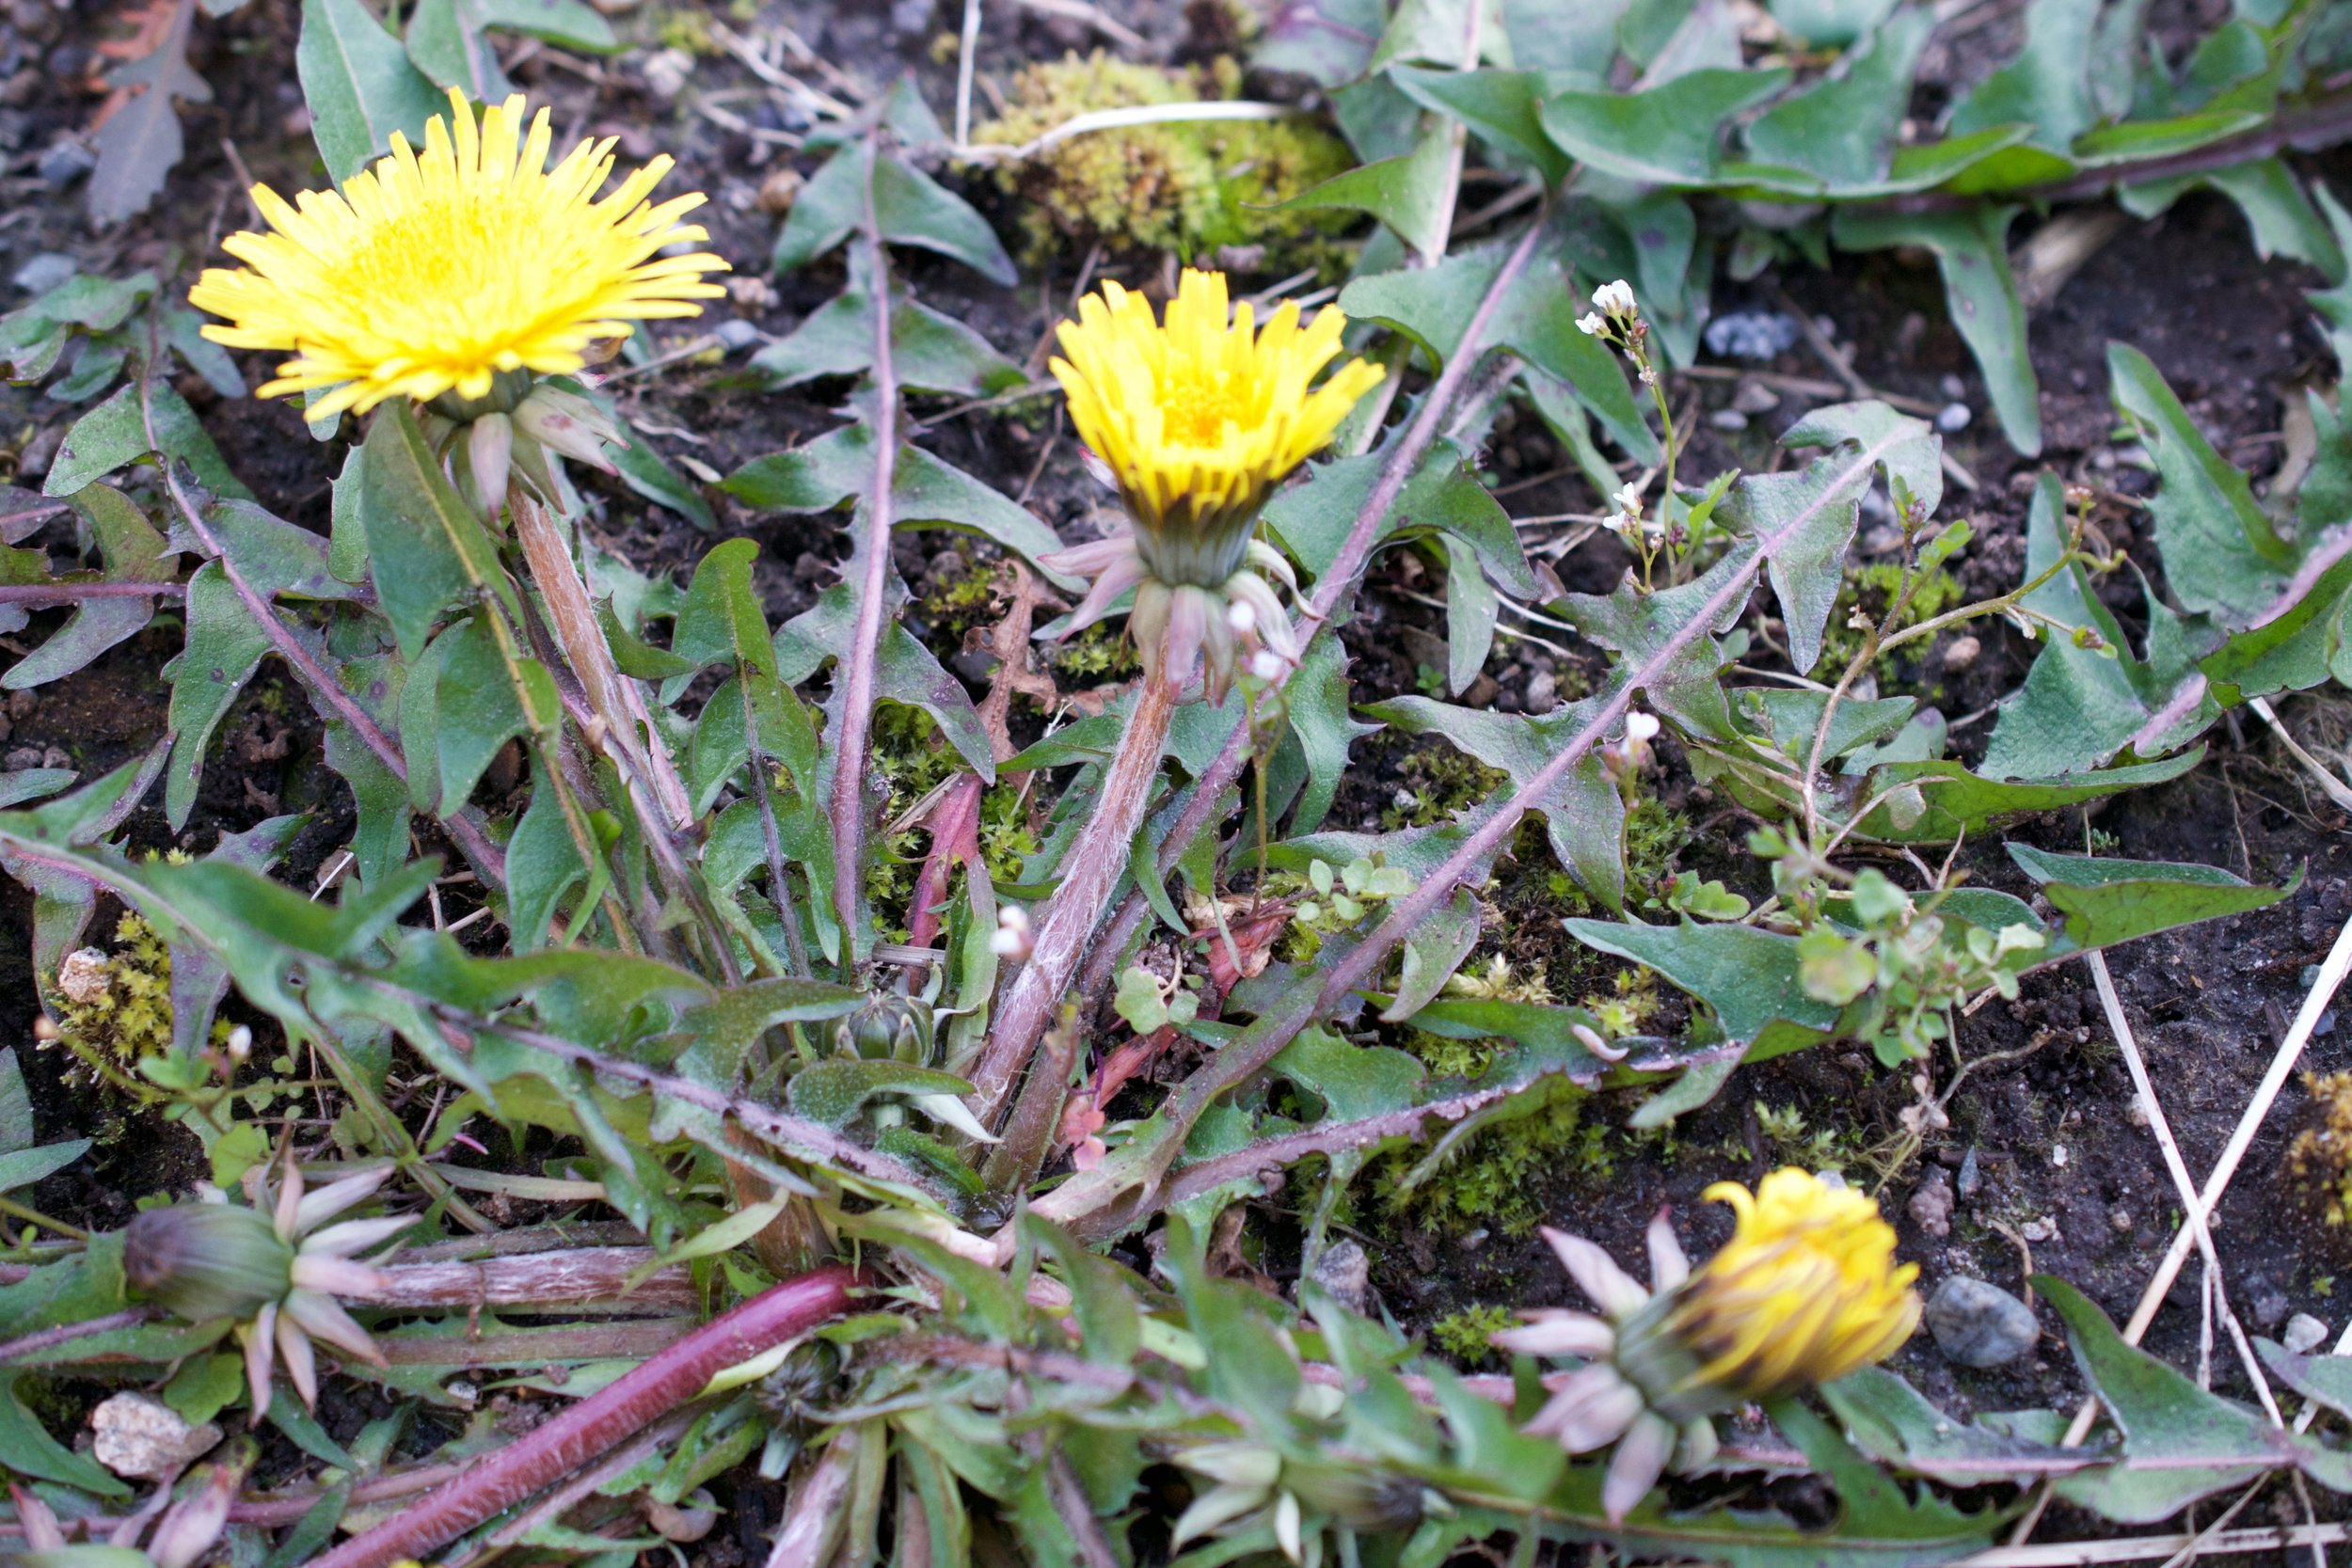 Dandelion growing in round rosette along the ground.